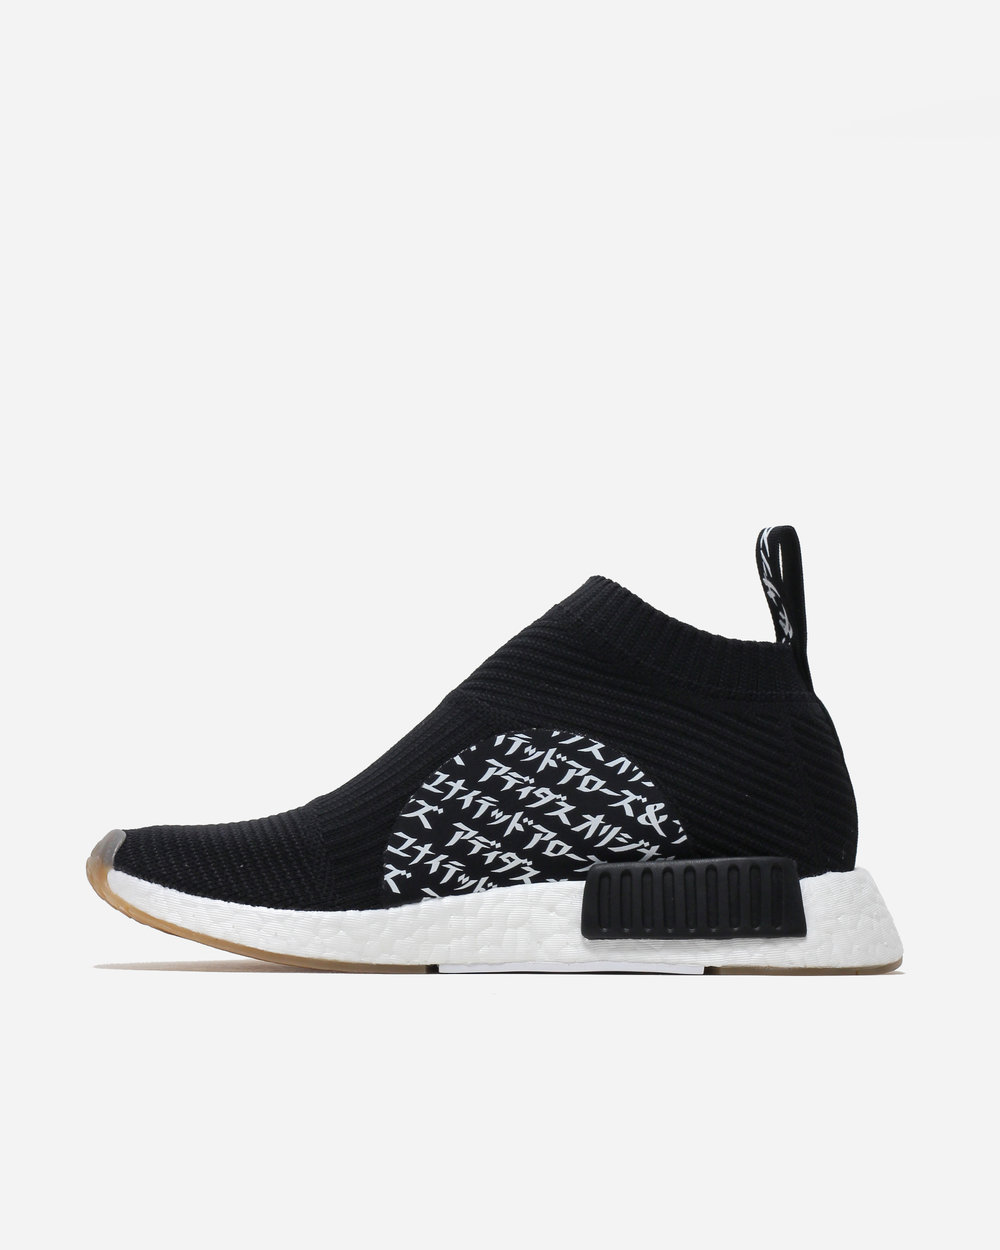 Adidas NMD XR1 PK BB1967 Size 6 White